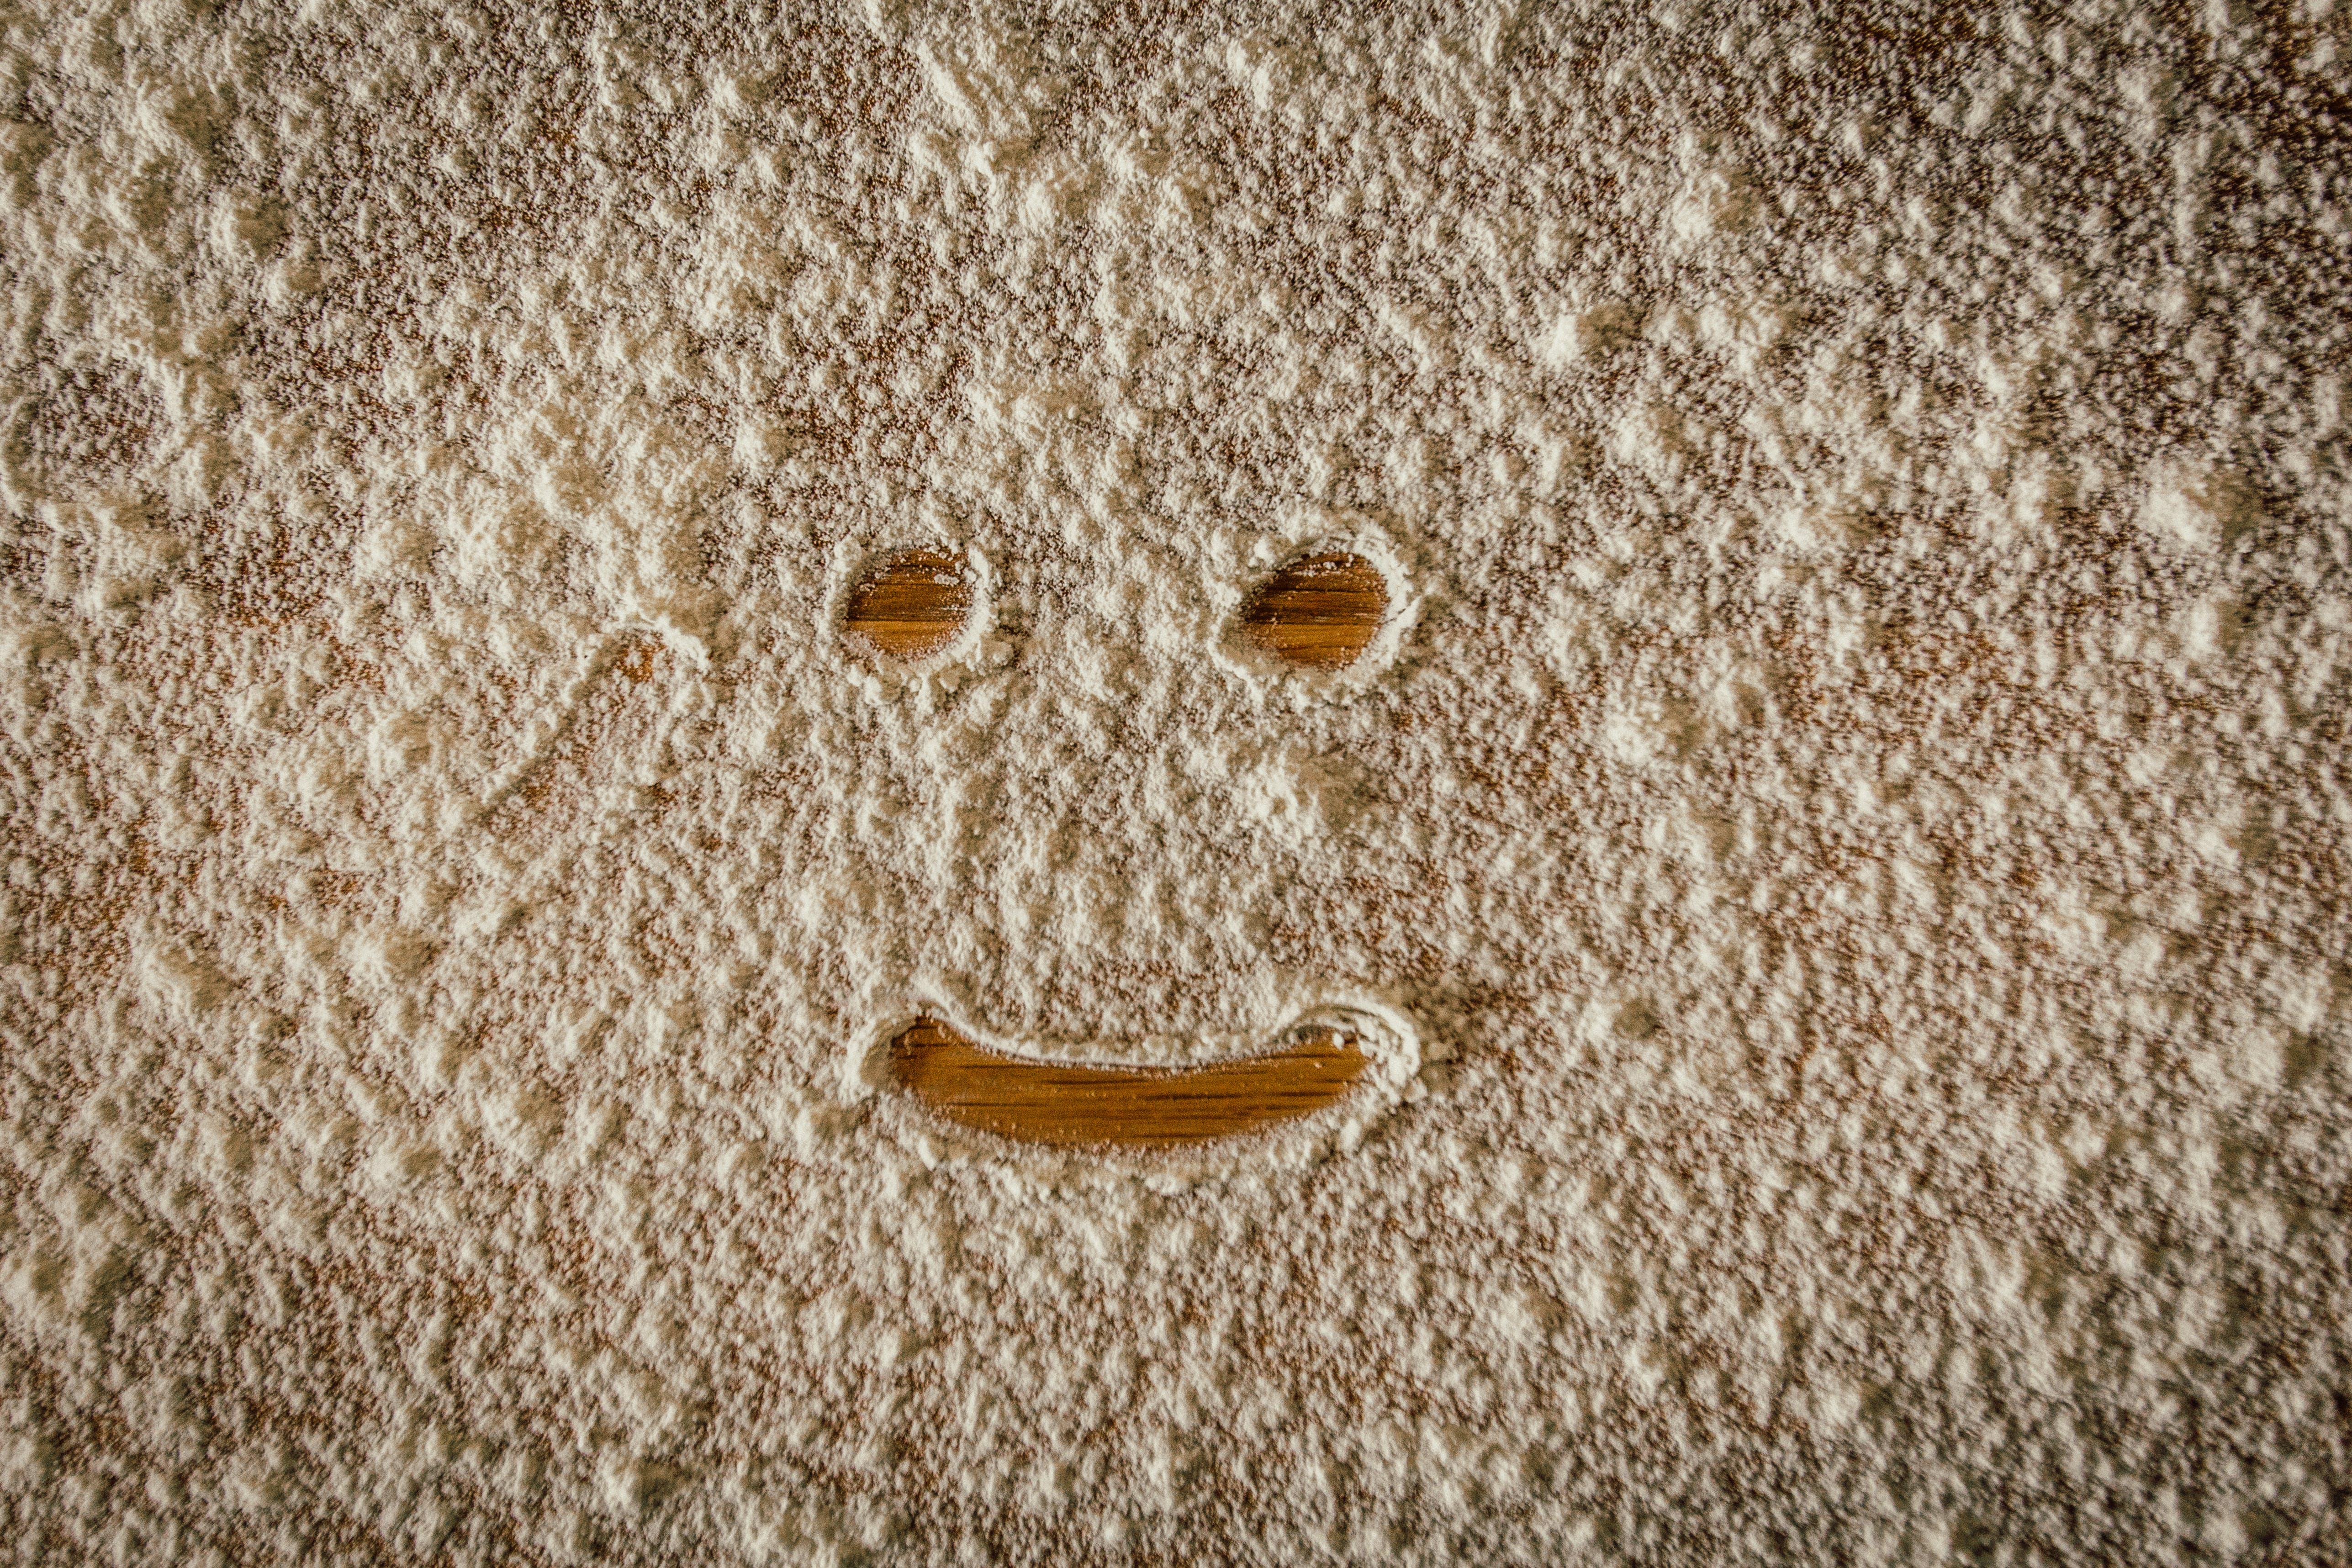 Flour With Smiling Face on Parquet Flooring